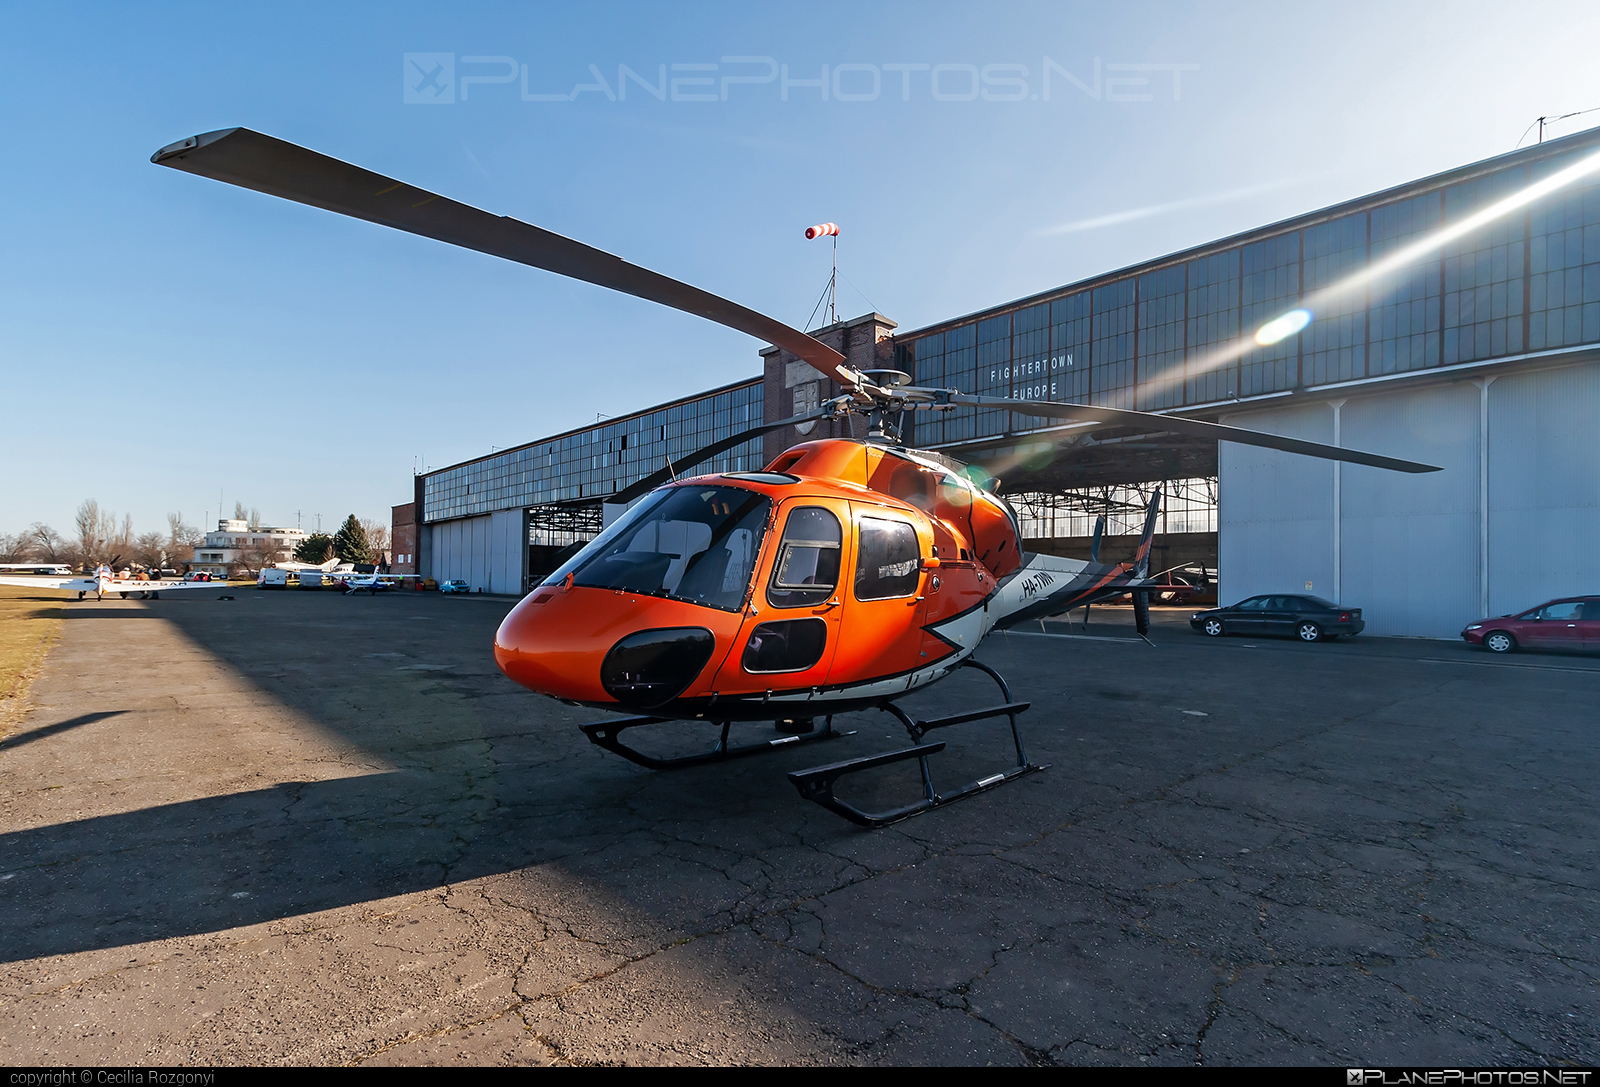 Eurocopter AS355 F2 Ecureuil 2 - HA-TWN operated by Fly4Less Helicopter #eurocopter #fly4lesshelicopter